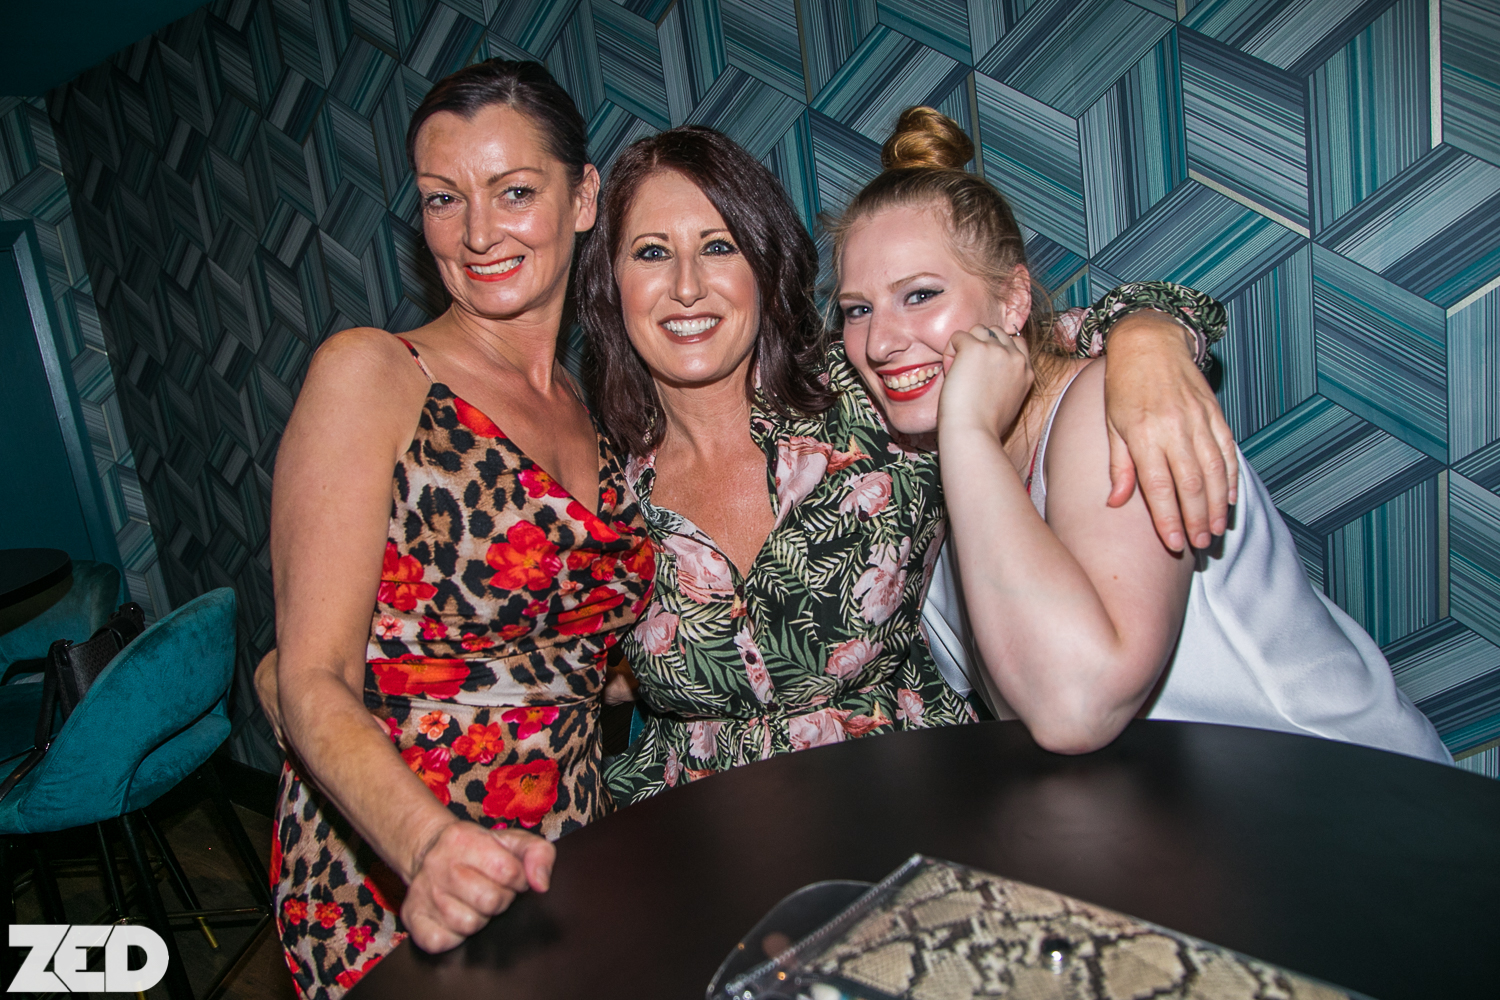 Guests enjoy a night out at The Carlton bar in Southport. Photo by ZED Photography